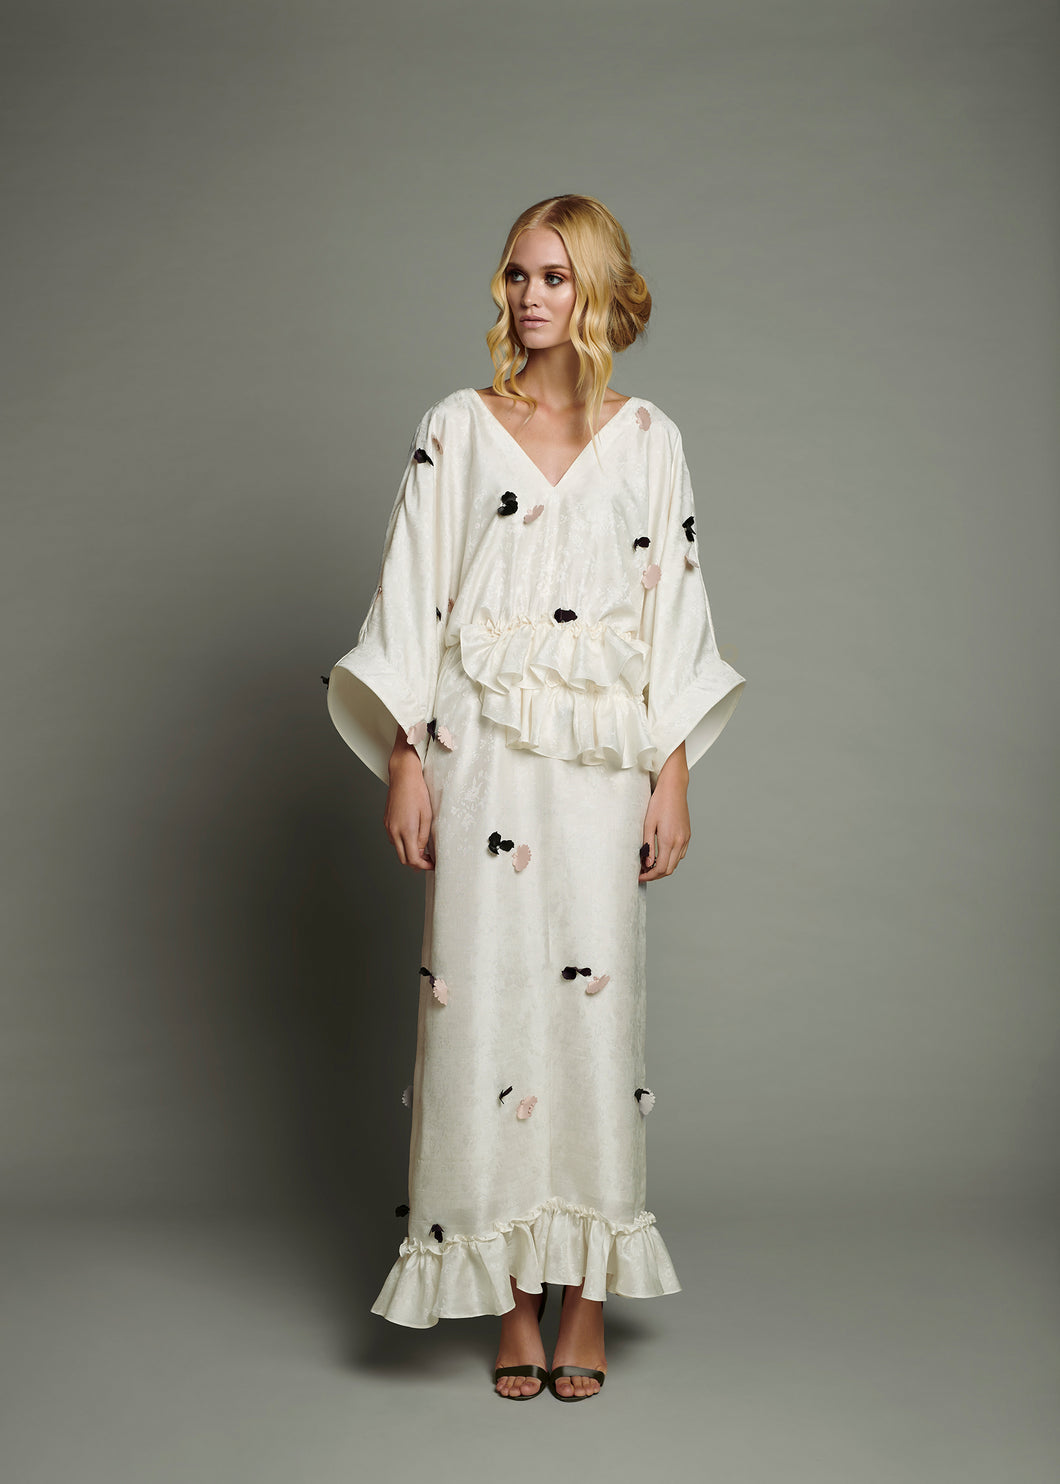 White Jacquard Maxi Dress with Horse Hair Ribbon Sleeve Trim and Bordeaux and Nude 3D Petal Appliqué